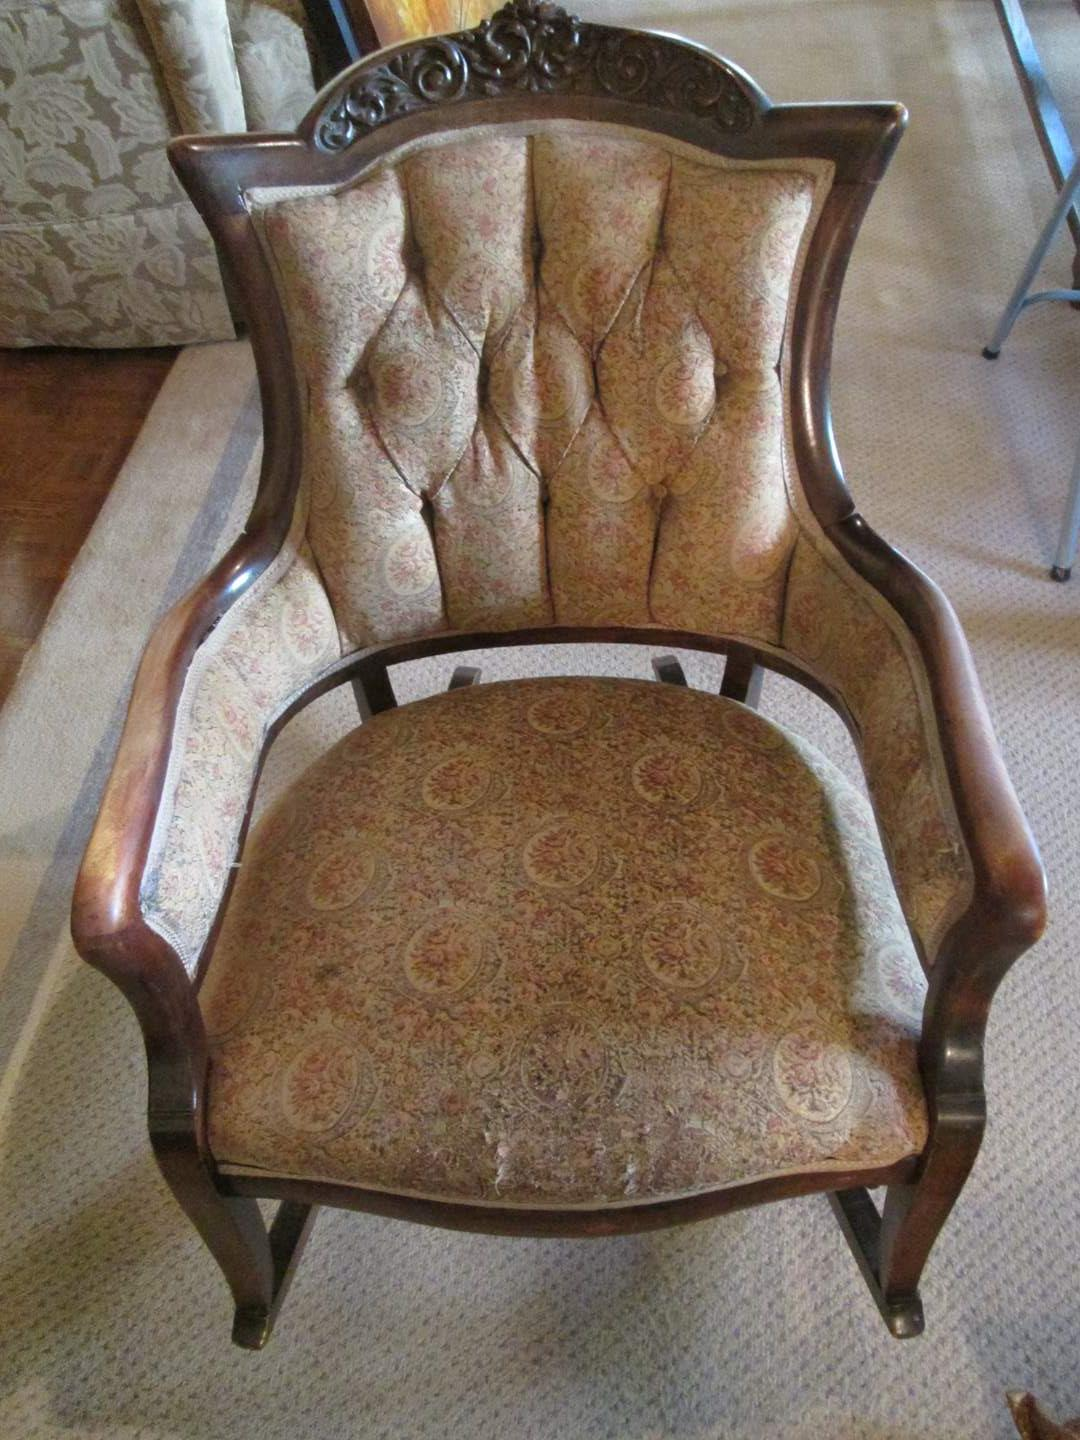 Lot # 309 - Upholstered & Button-Tufted Rocking Chair, C-Late 1800's (main image)